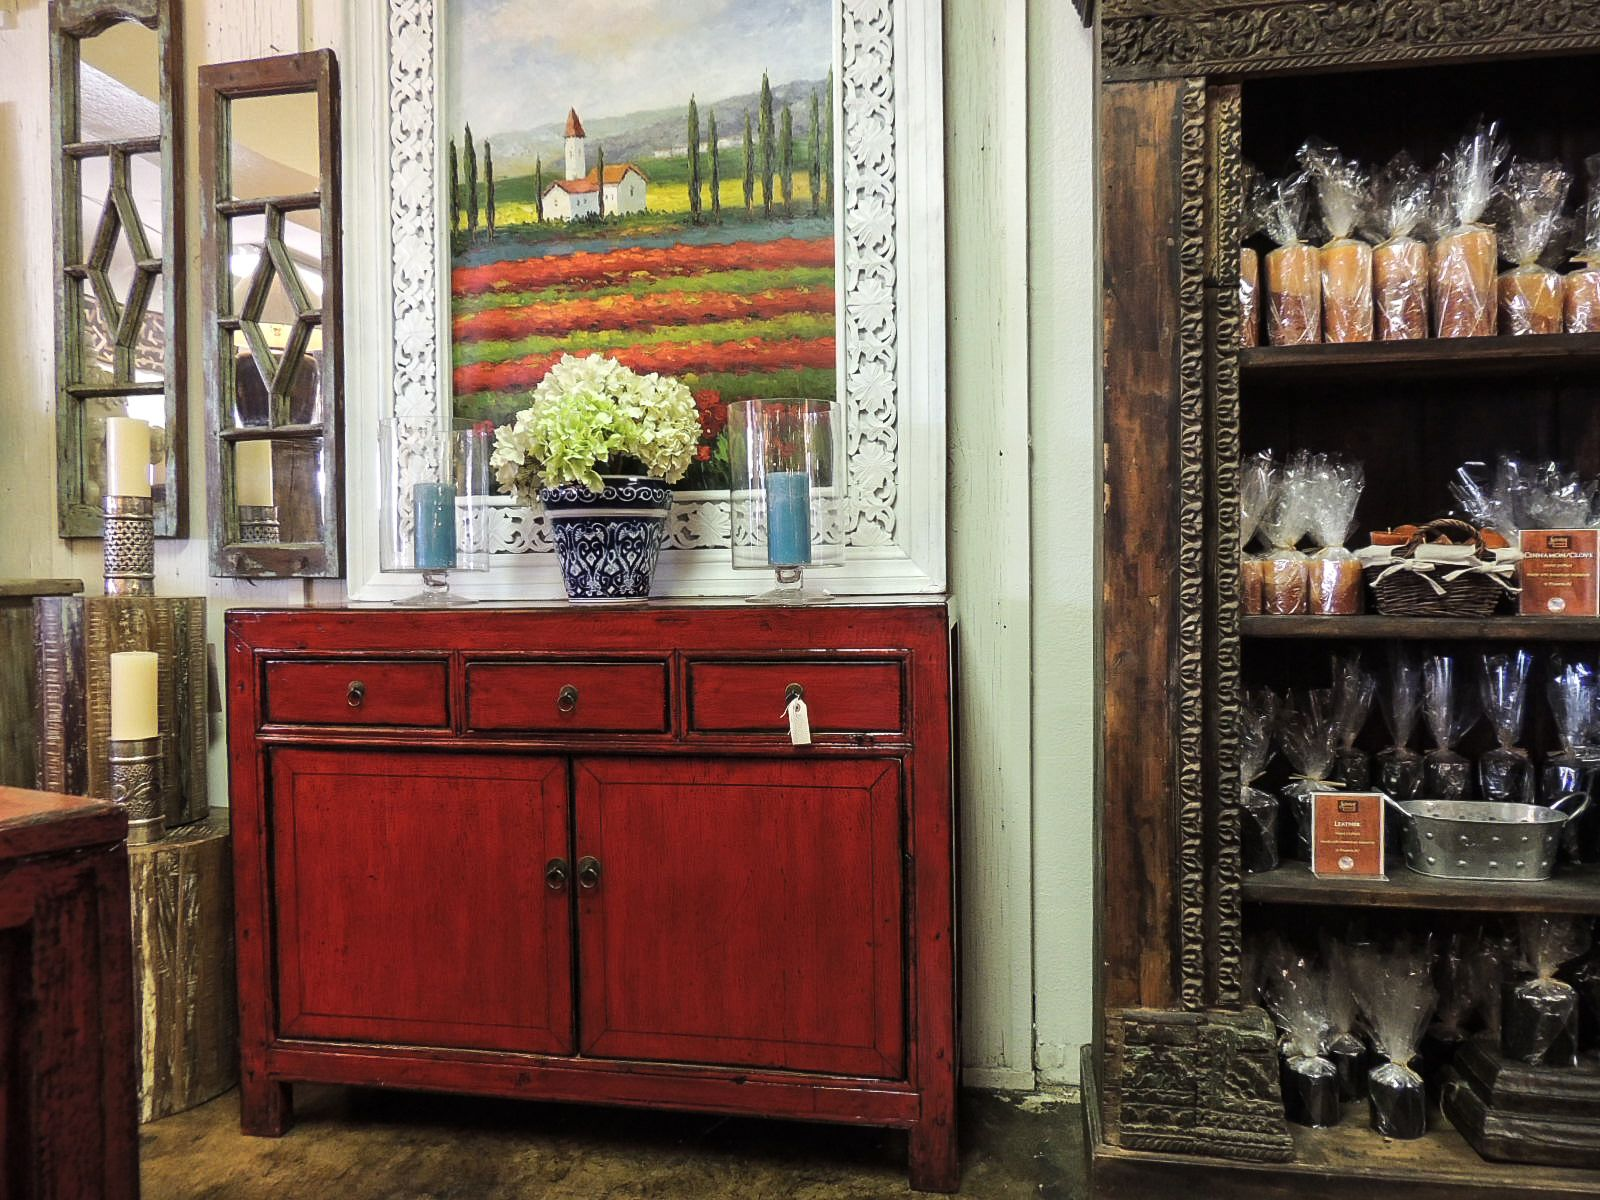 #Buffet #Buffets #Cabinet #Red #Chinese #Painting #Frame #Frames #Candle #Candles